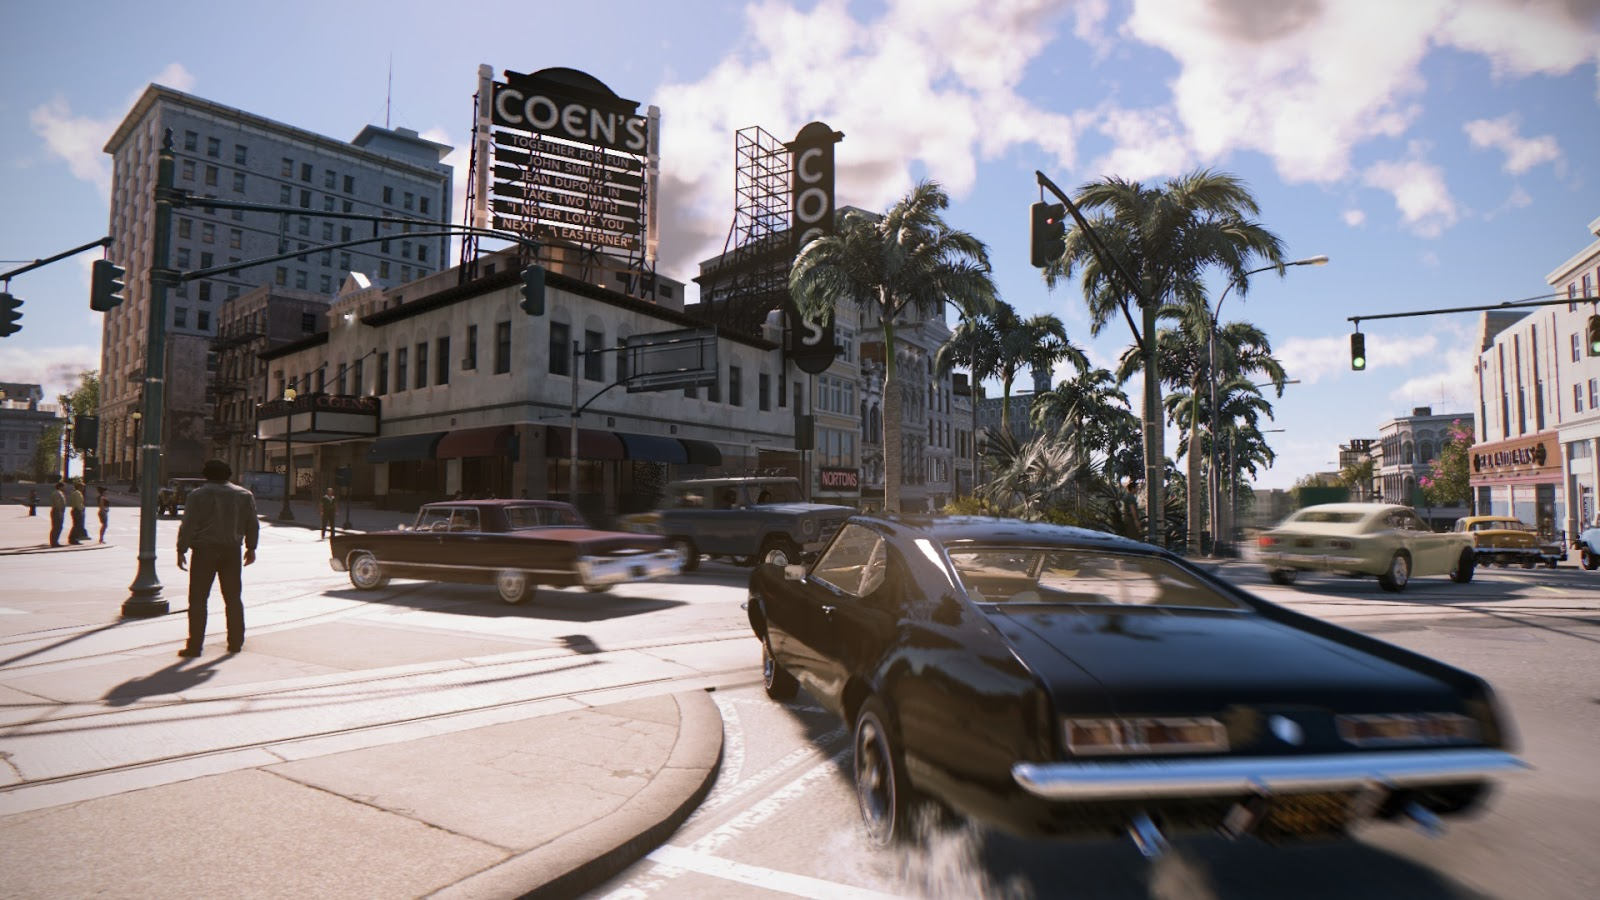 MAFIA 3 beautiful hd game wallpaper 1920x1080